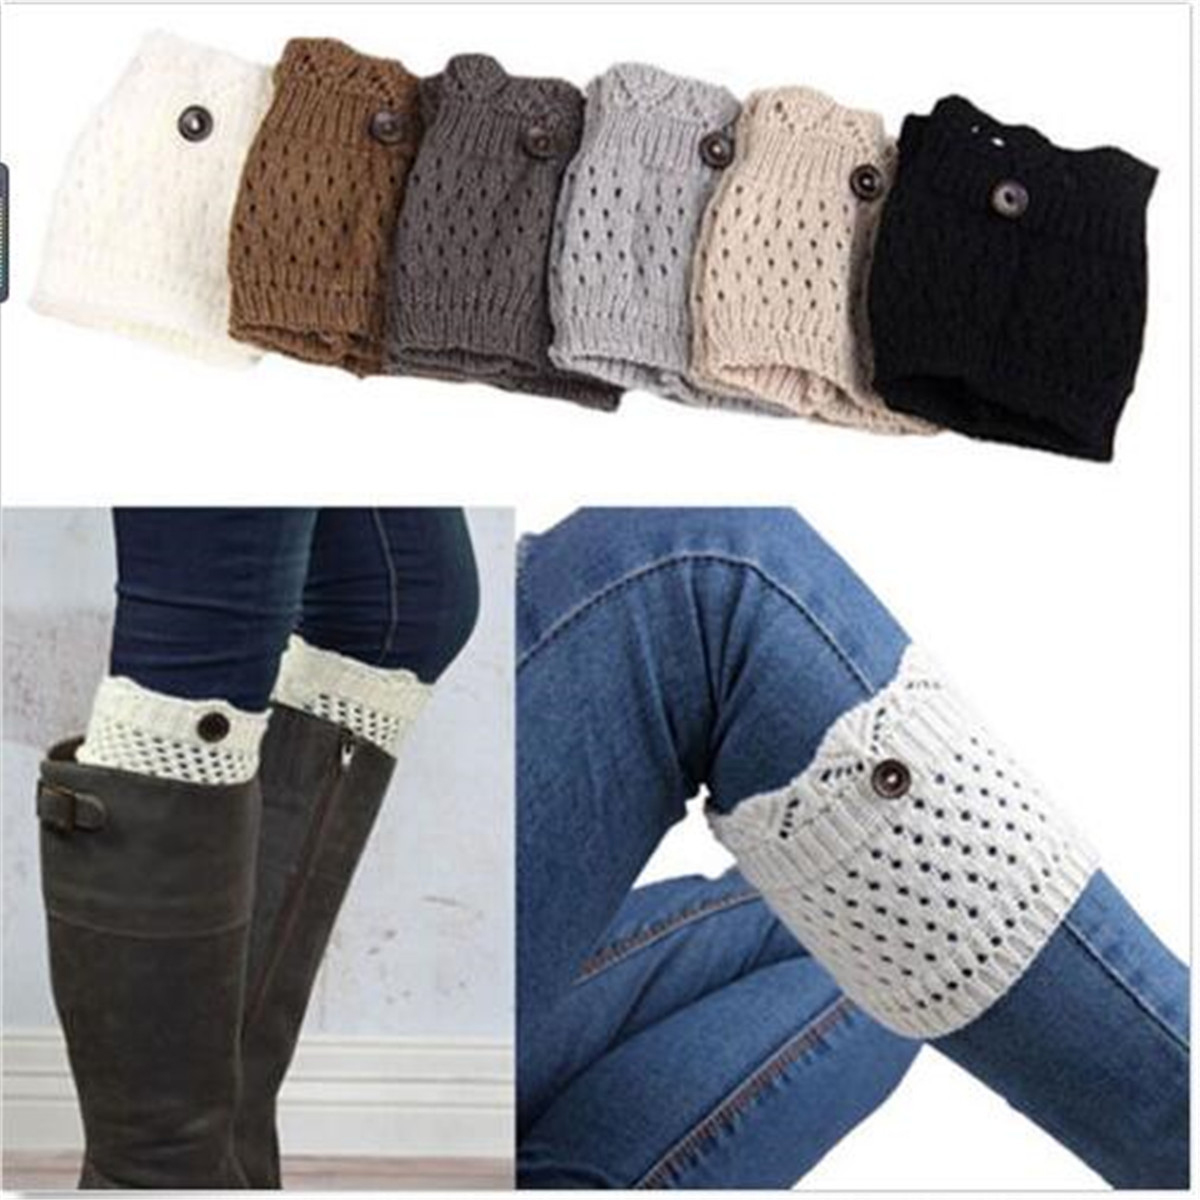 Novelty Fashion Women Winter Crochet Knitted Button Cover Boot Socks Leg Warmers Toppers Accessories